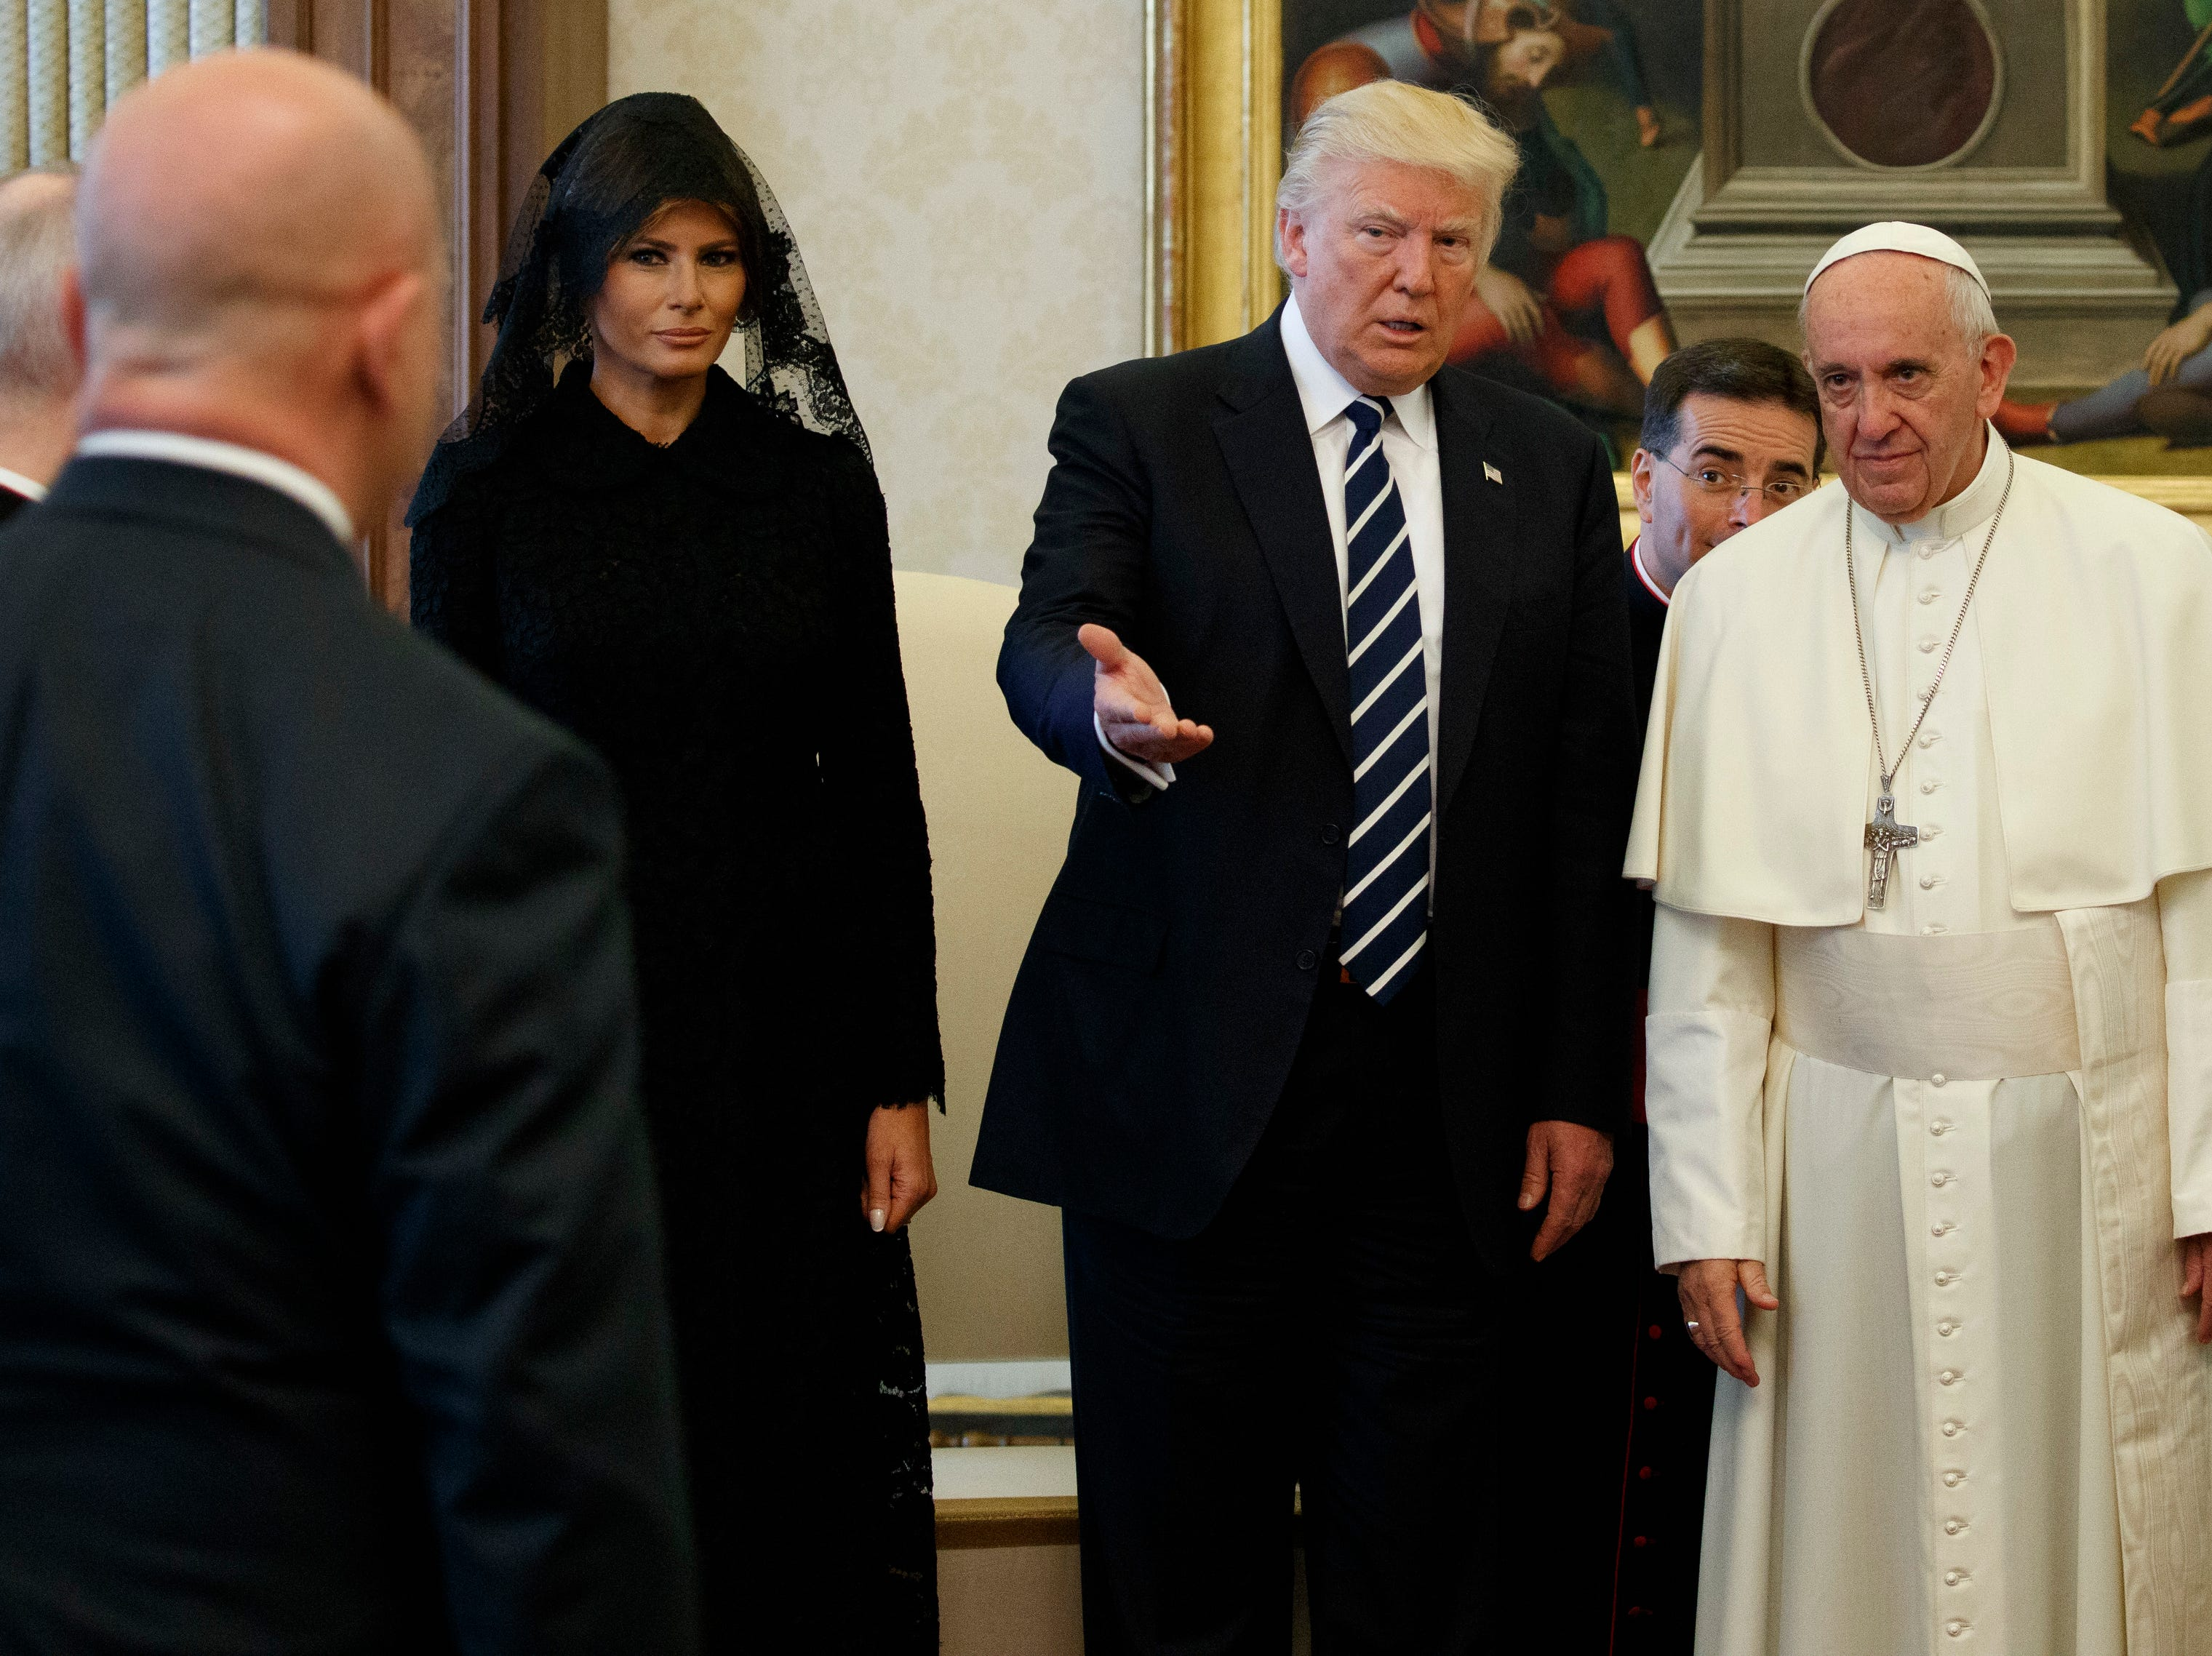 First Lady Melania Trump looks on as President Trump introduces National Security Adviser H.R. McMaster to Pope Francis on May 24, 2017, at the Vatican. (